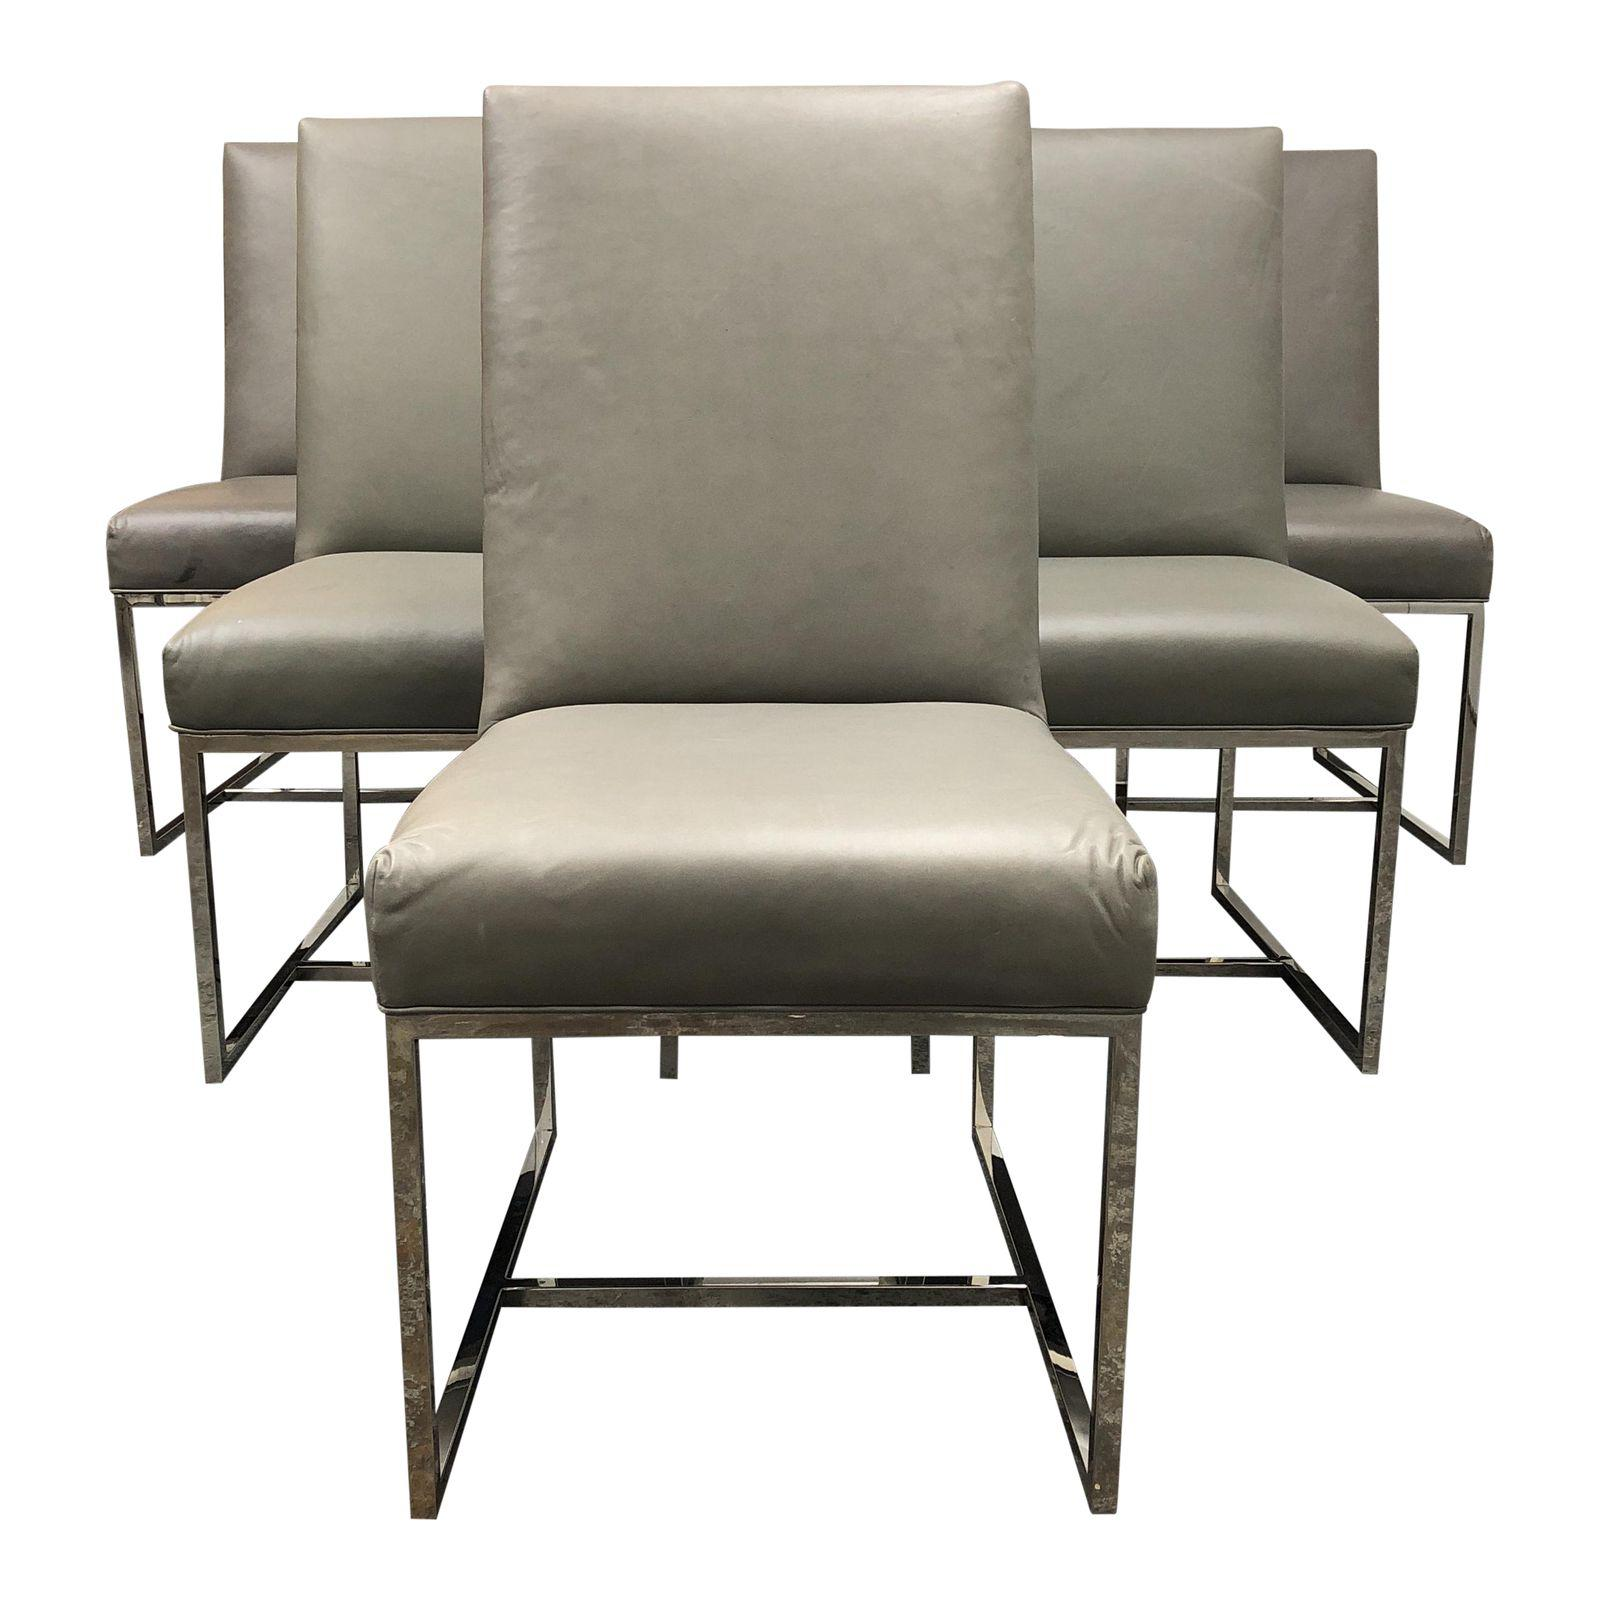 Restoration Hardware Grant Leather Chairs U2013 Set Of 6. Original  Price:$11,370.00